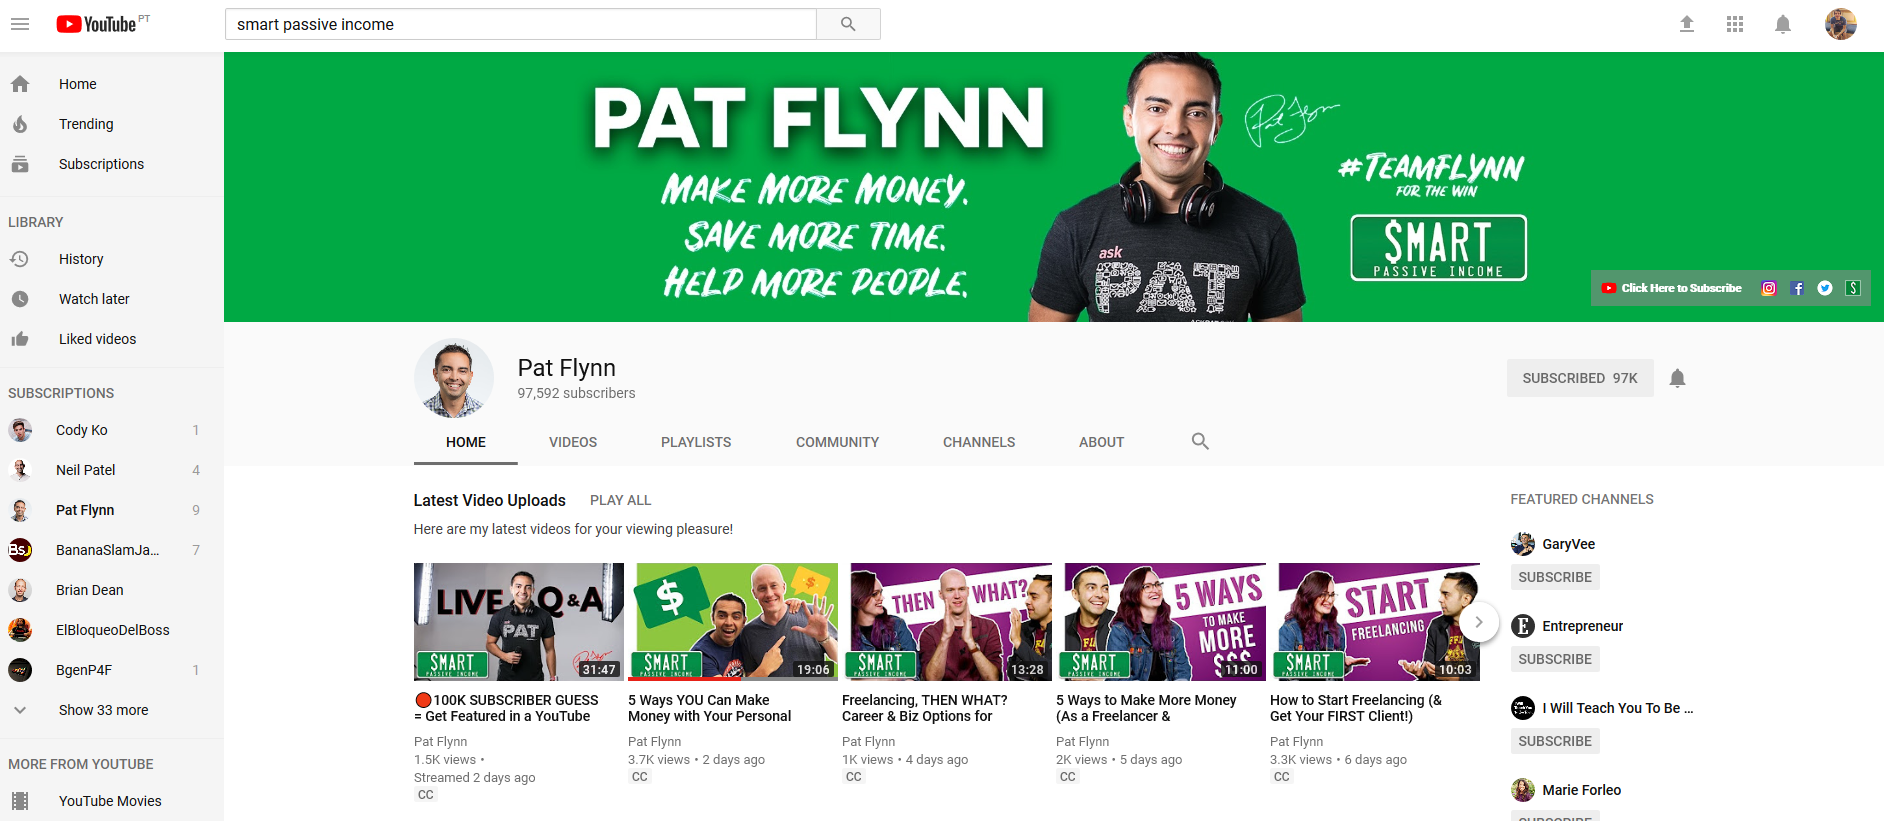 Nice youtube channel image brand